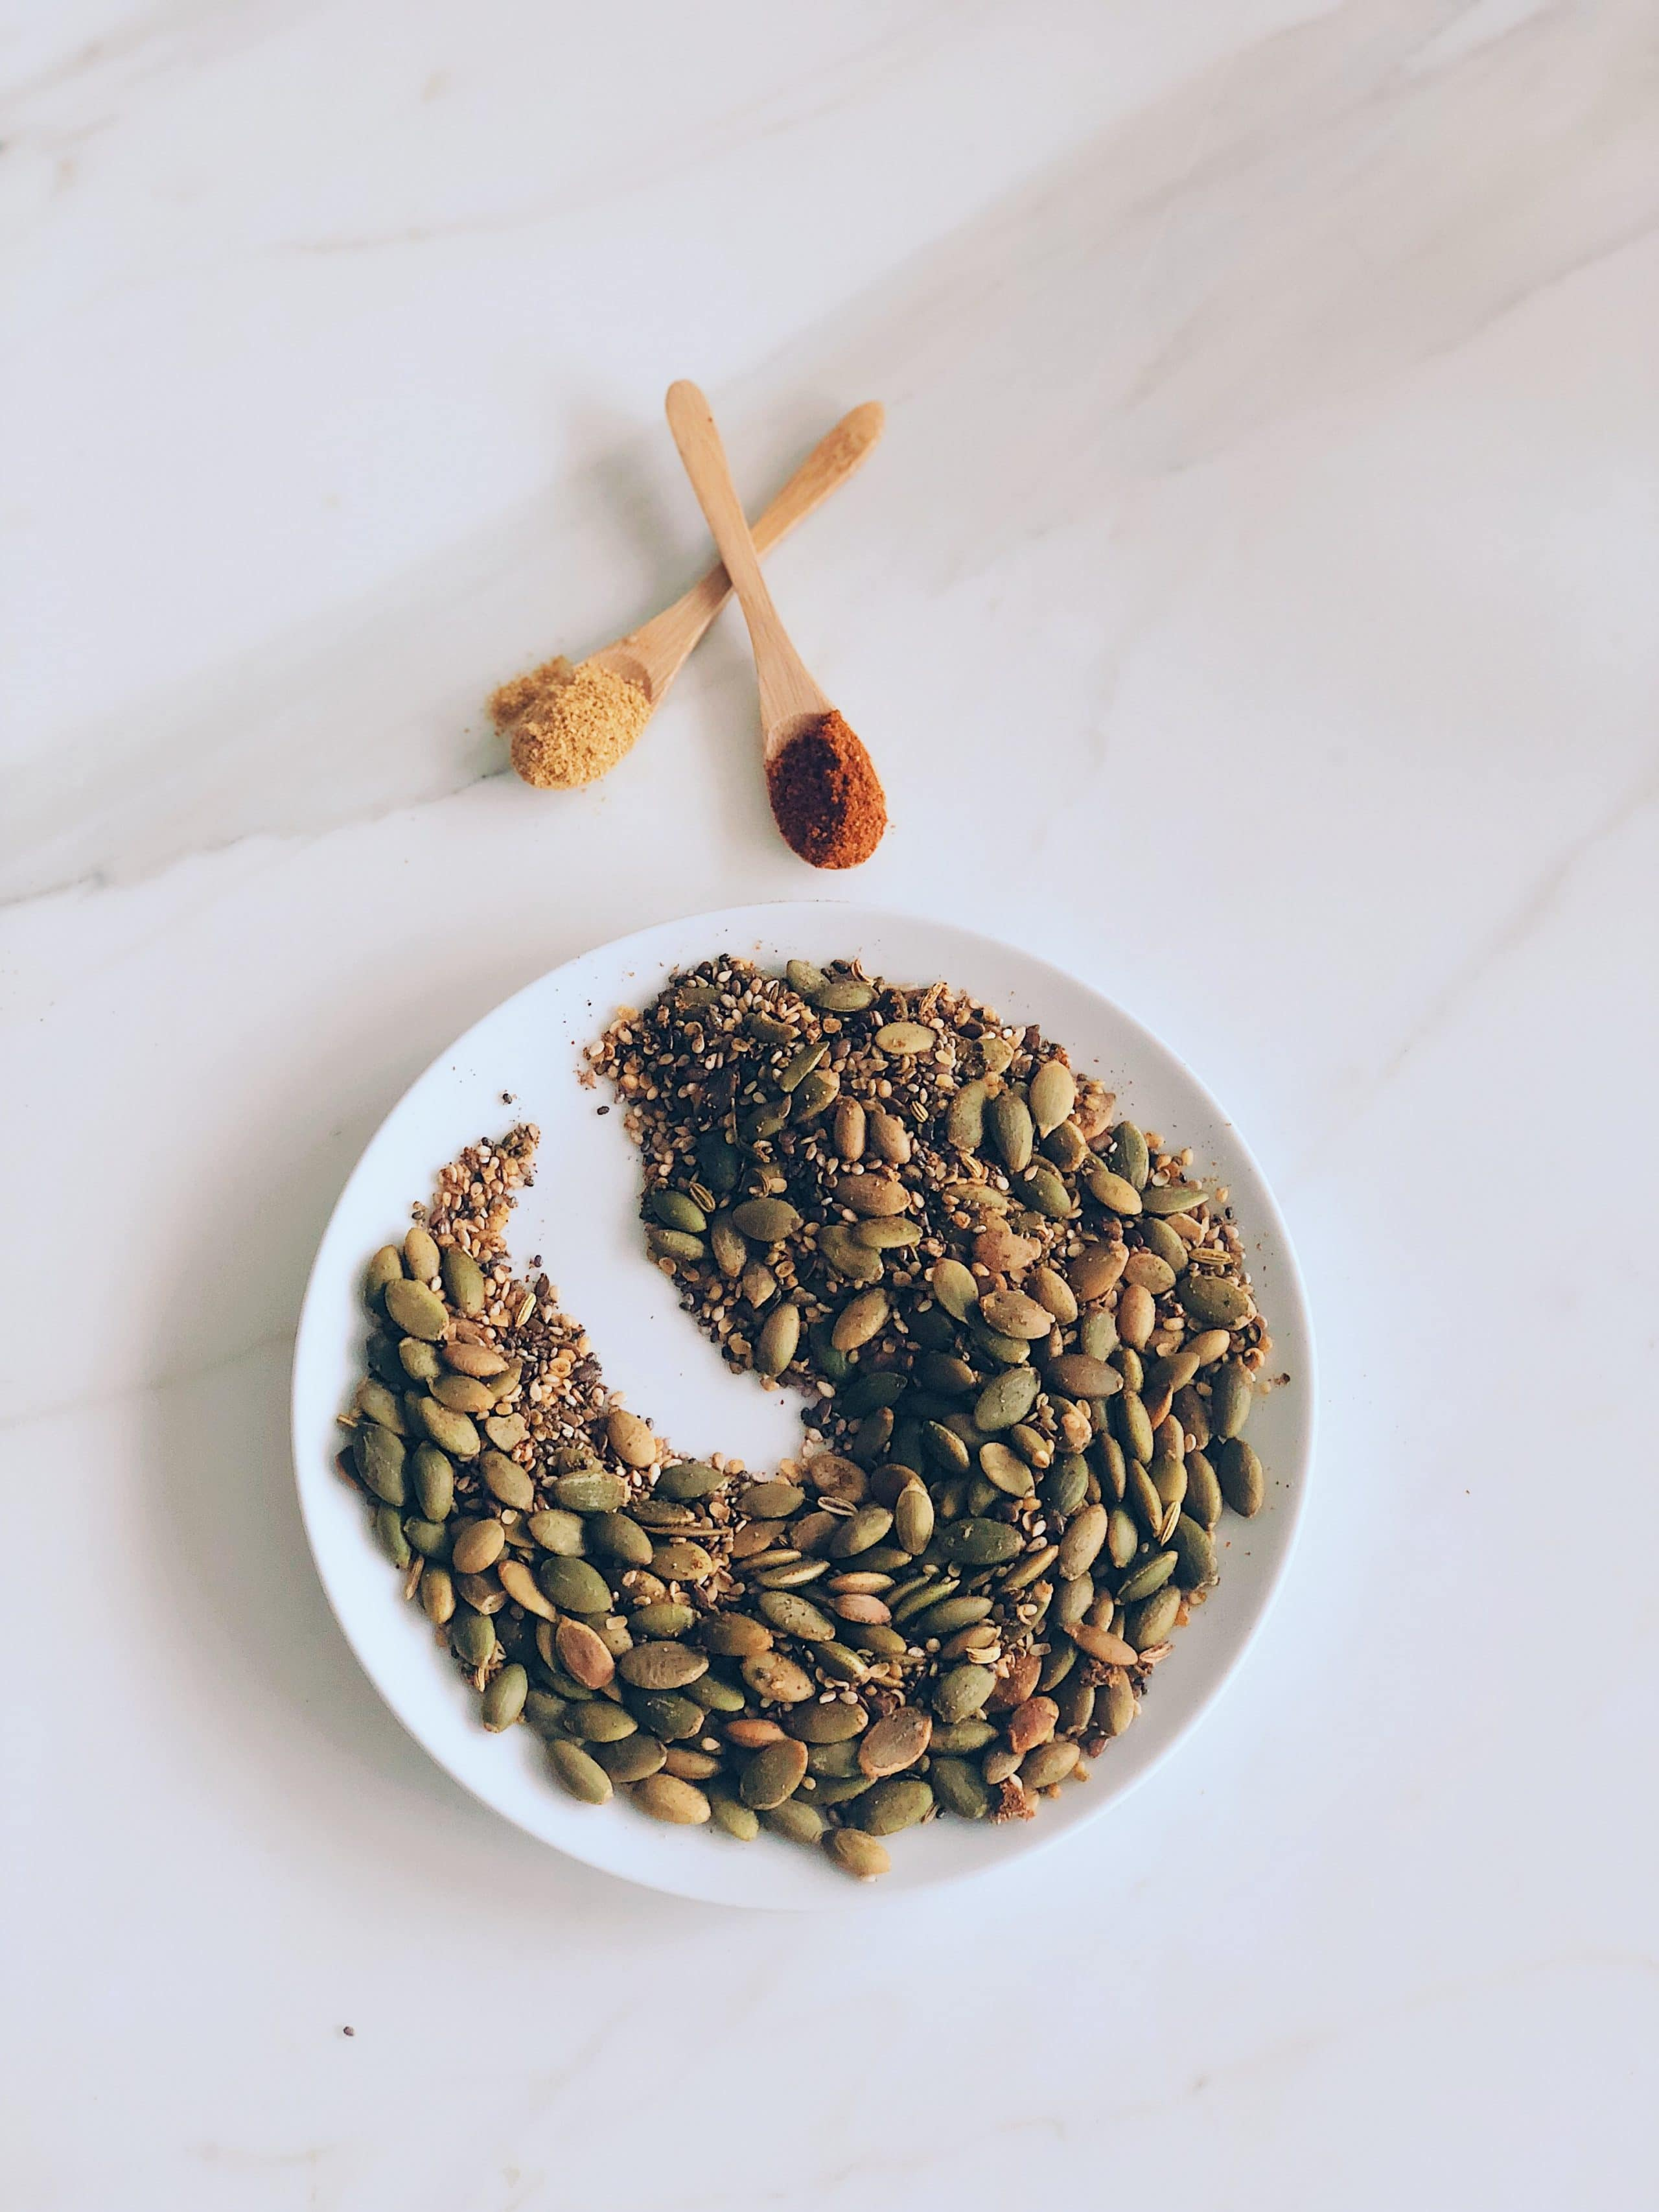 Spice and Seed Mix for Topping The Detox Soups – Or Really Any Soup Or Salad